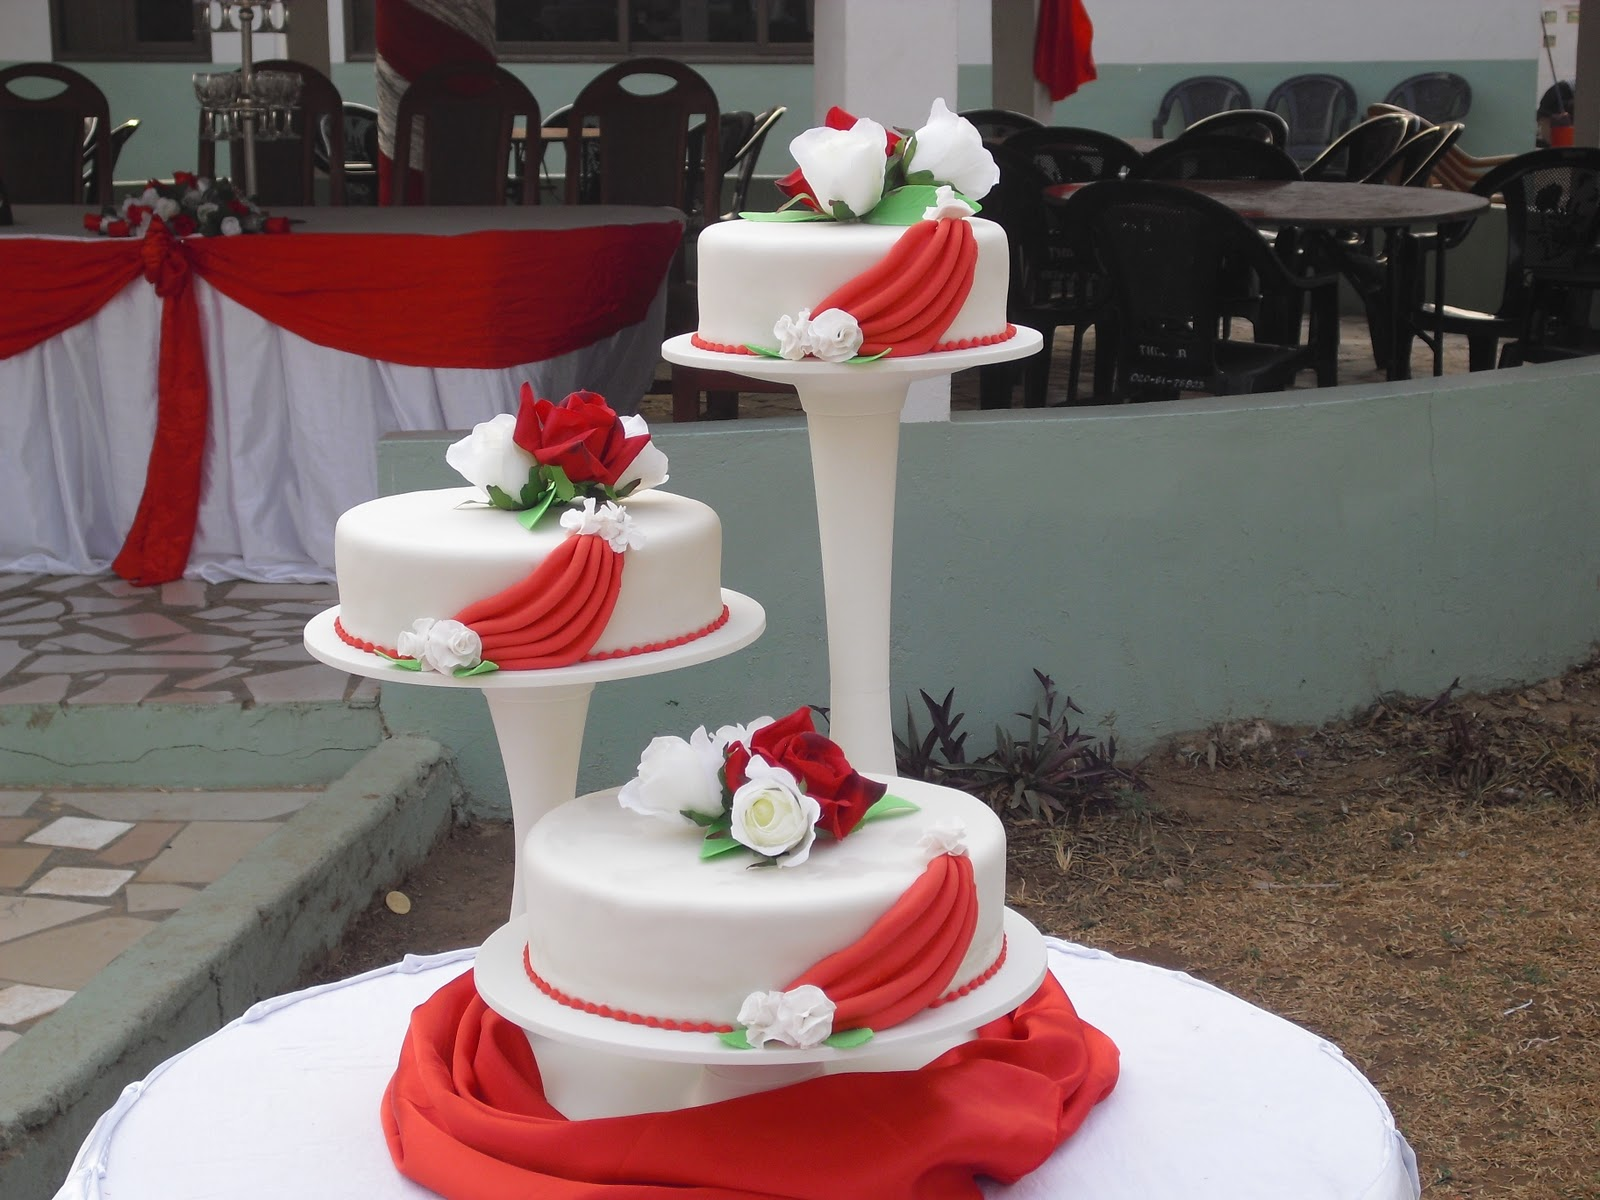 Cakes by elsie aikens red and white wedding cake red and white wedding cake junglespirit Image collections